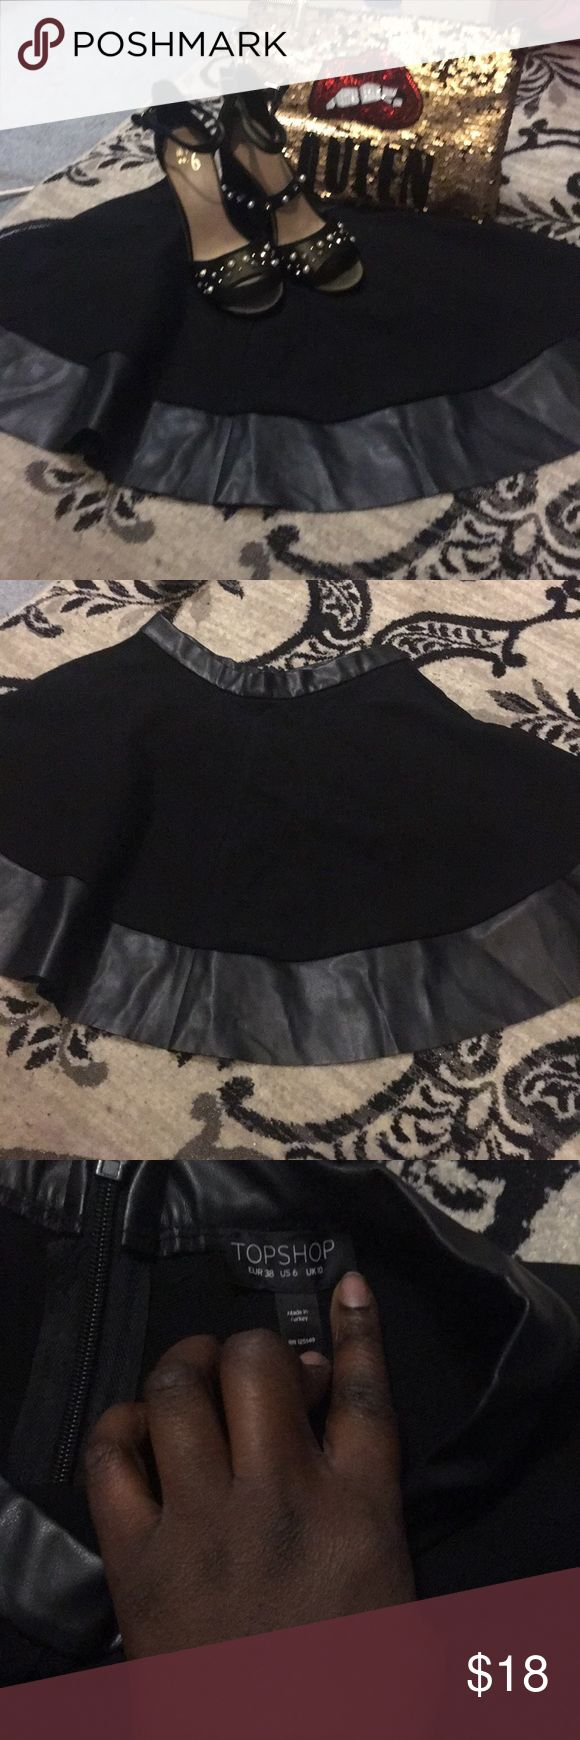 Faux leather skater skirt Topshop faux leather skater skirt. Night out, date night, girls night, concert, great for any occasion. Girls just want to have fun and look great doing it. Open to reasonable offers and bundle deals as well. Topshop Skirts Mini